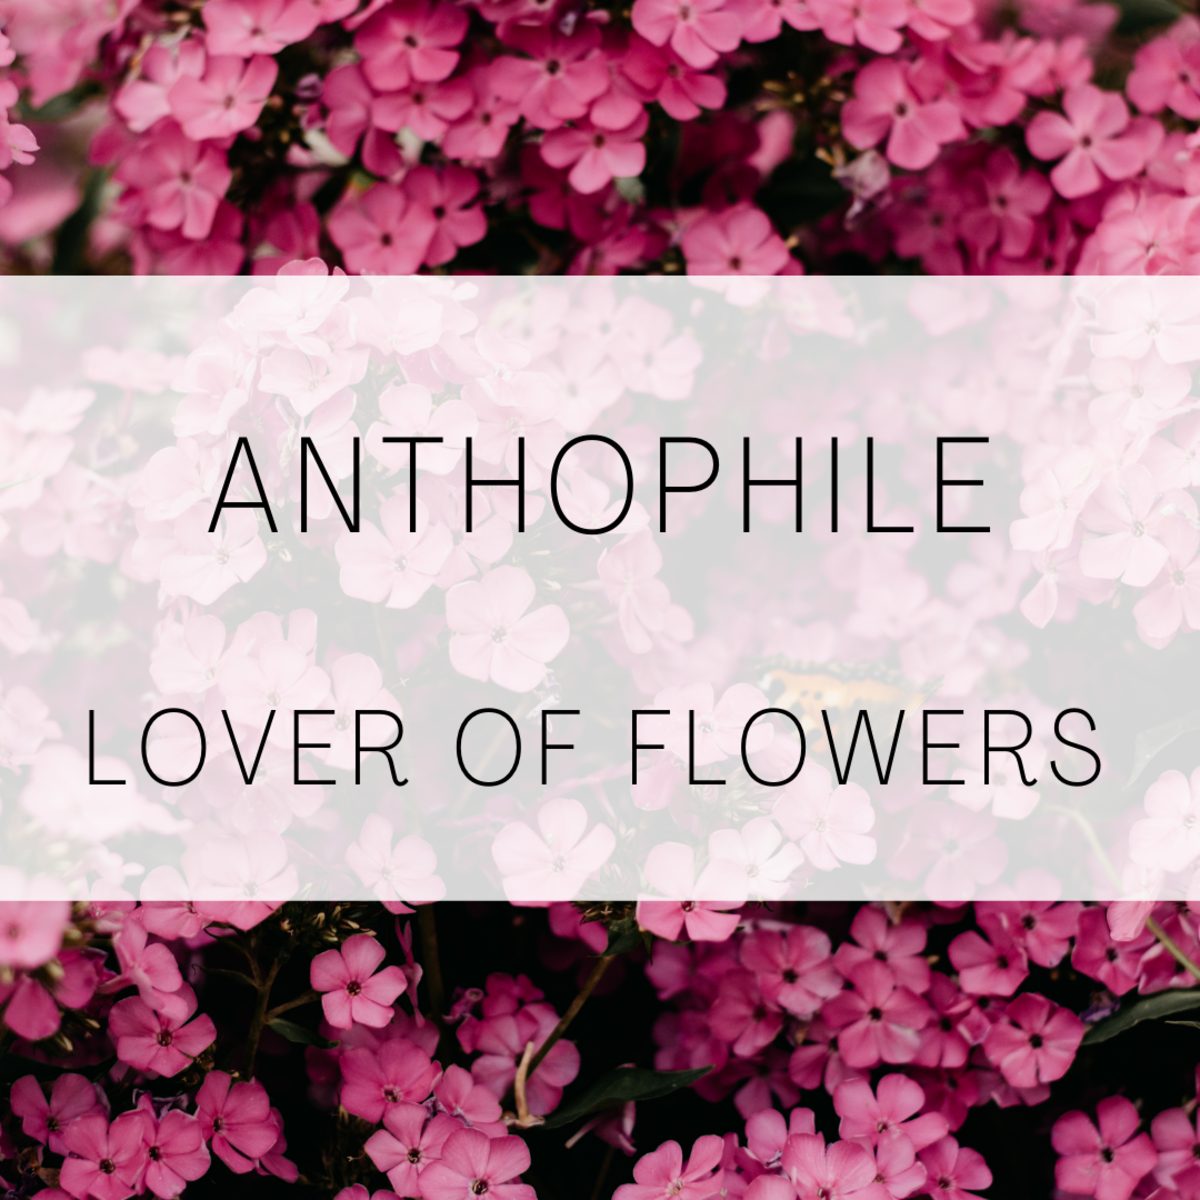 Anthopile, a lover of flowers